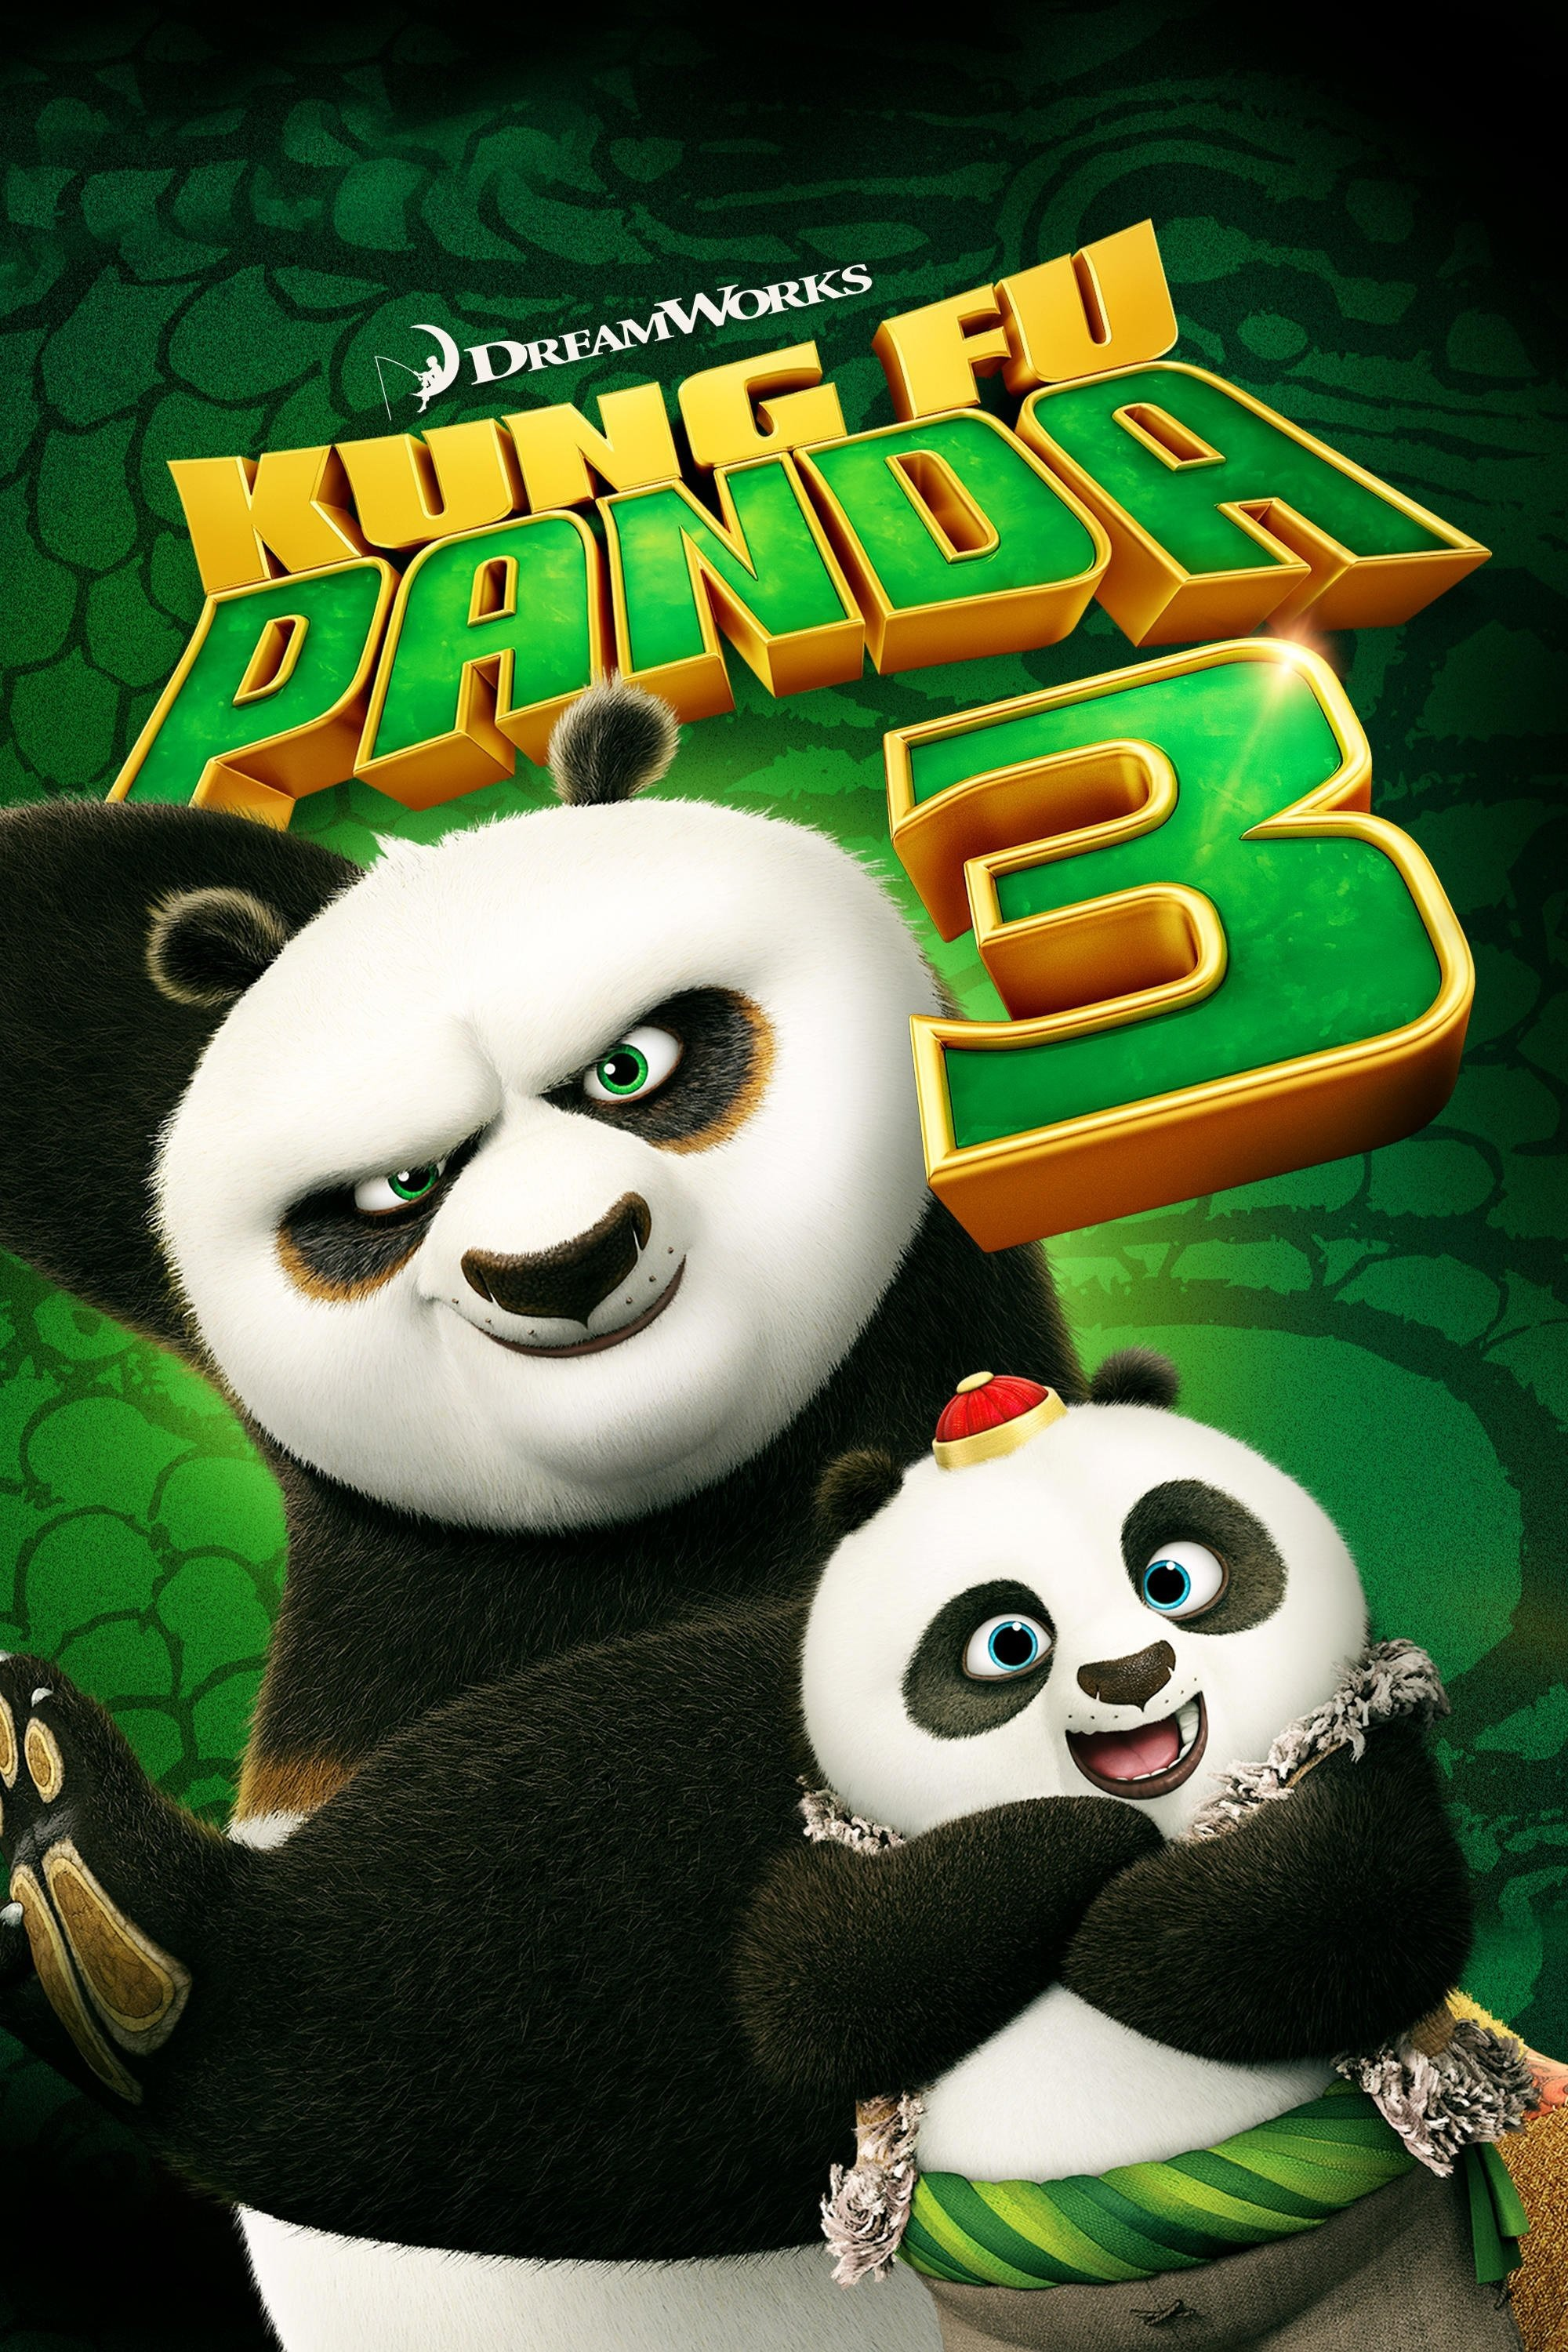 kung fu panda 3 2016 720p & 1080p brrip x264-loky [mega] – yourmovie